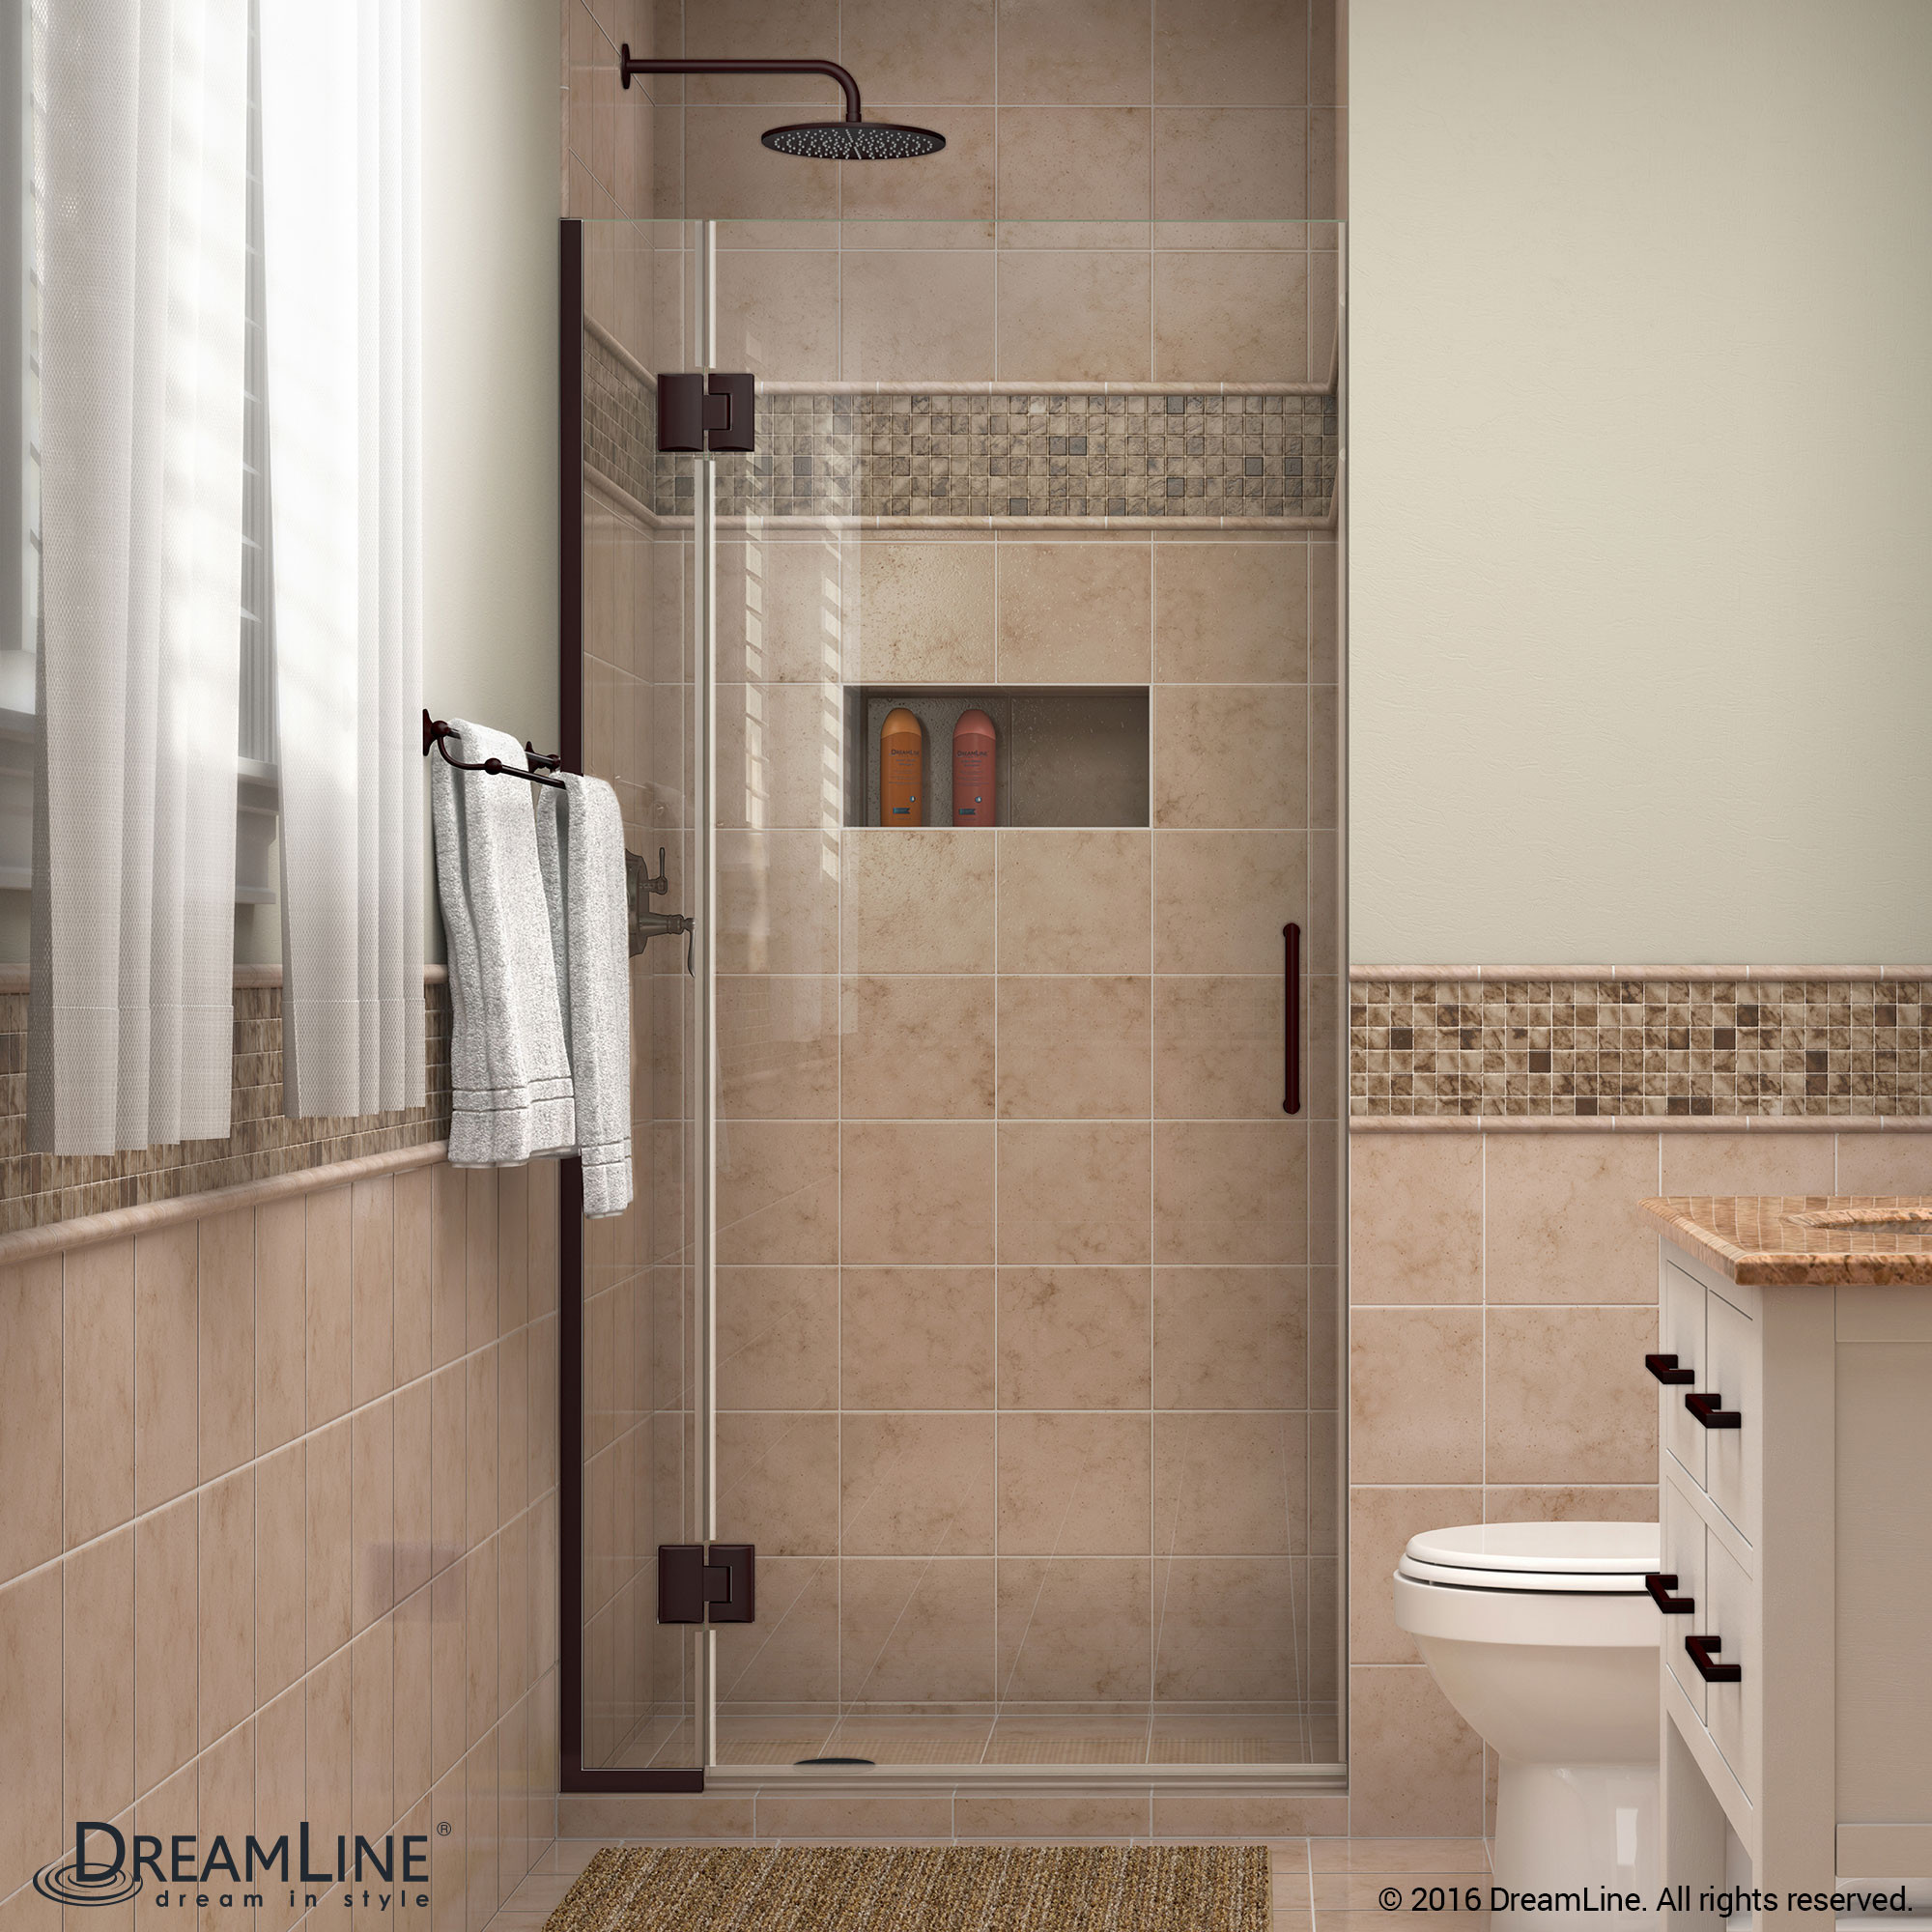 DreamLine D12872-06 Unidoor-X 34 in. W x 72 in. H Hinged Shower Door in Oil Rubbed Bronze Finish